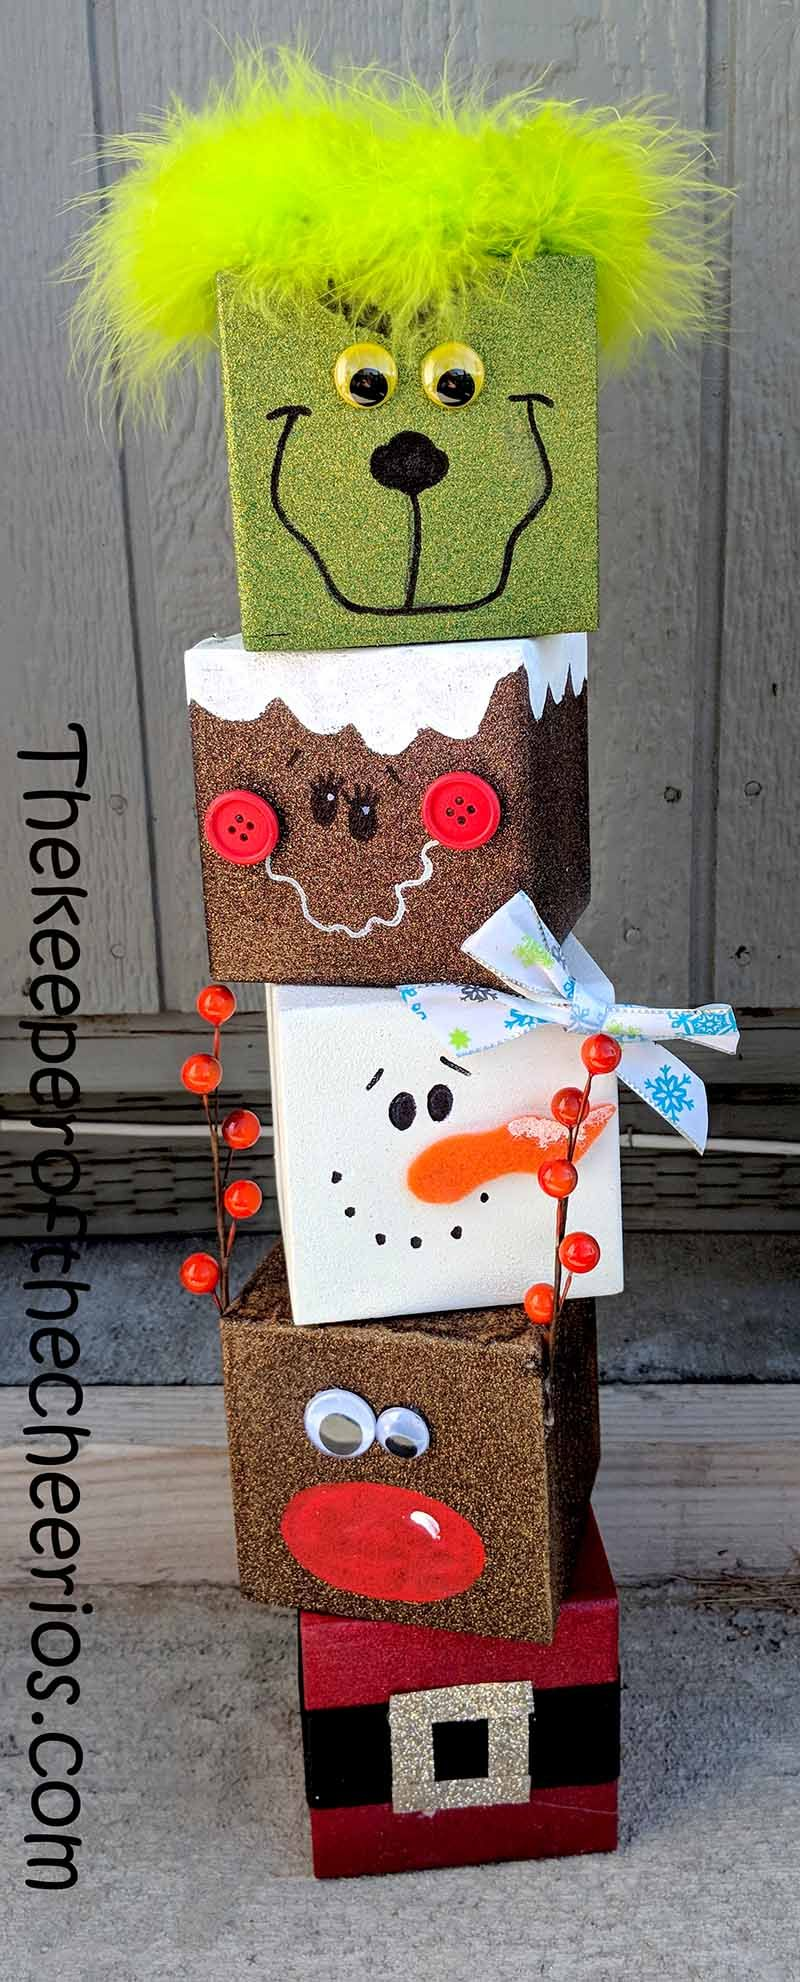 Christmas Craft Blocks The Keeper Of The Cheerios Wooden Christmas Crafts Christmas Crafts Diy Christmas Wood